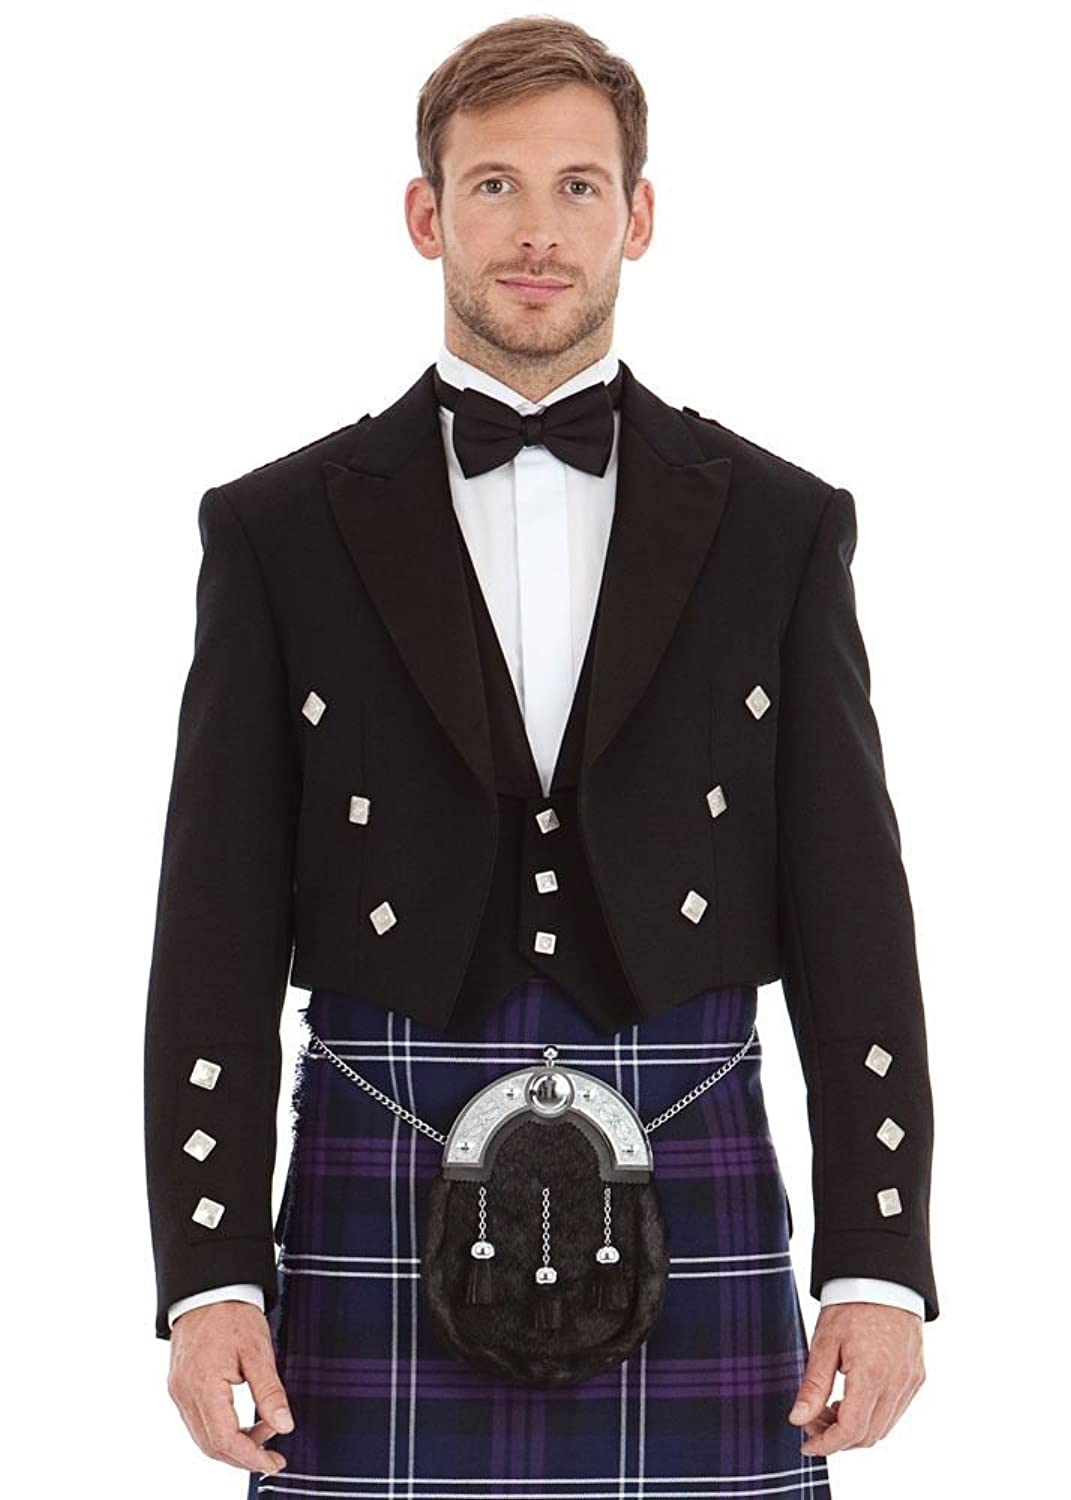 M�nner Scottish Black Prince Charlie Kilt Jacke & 42 Long Weste